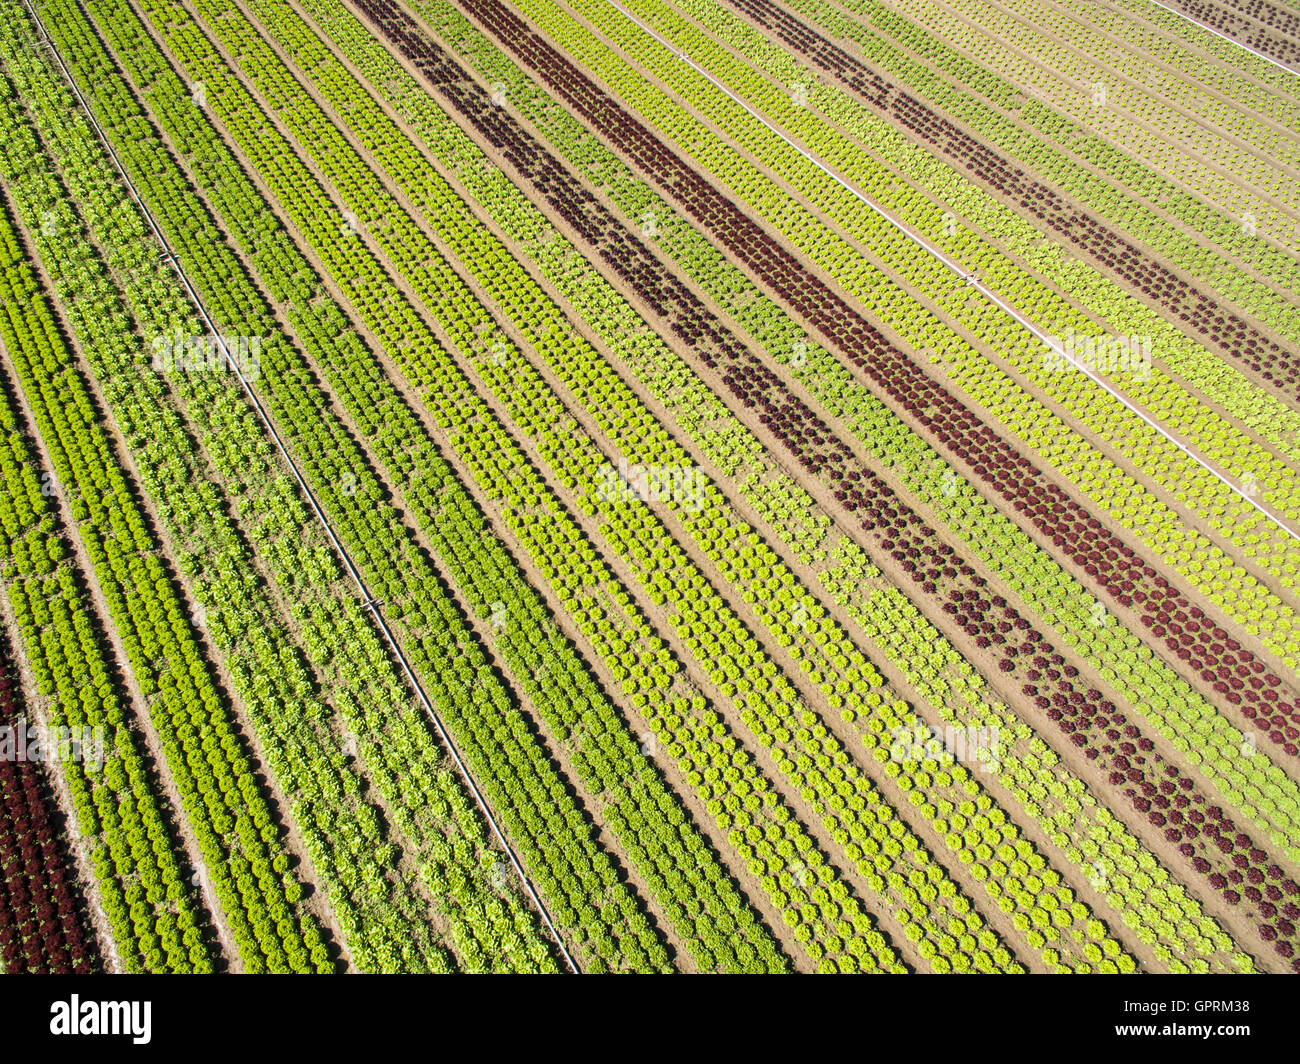 Aerial agricultural view of lettuce production field and greenhouse - Stock Image